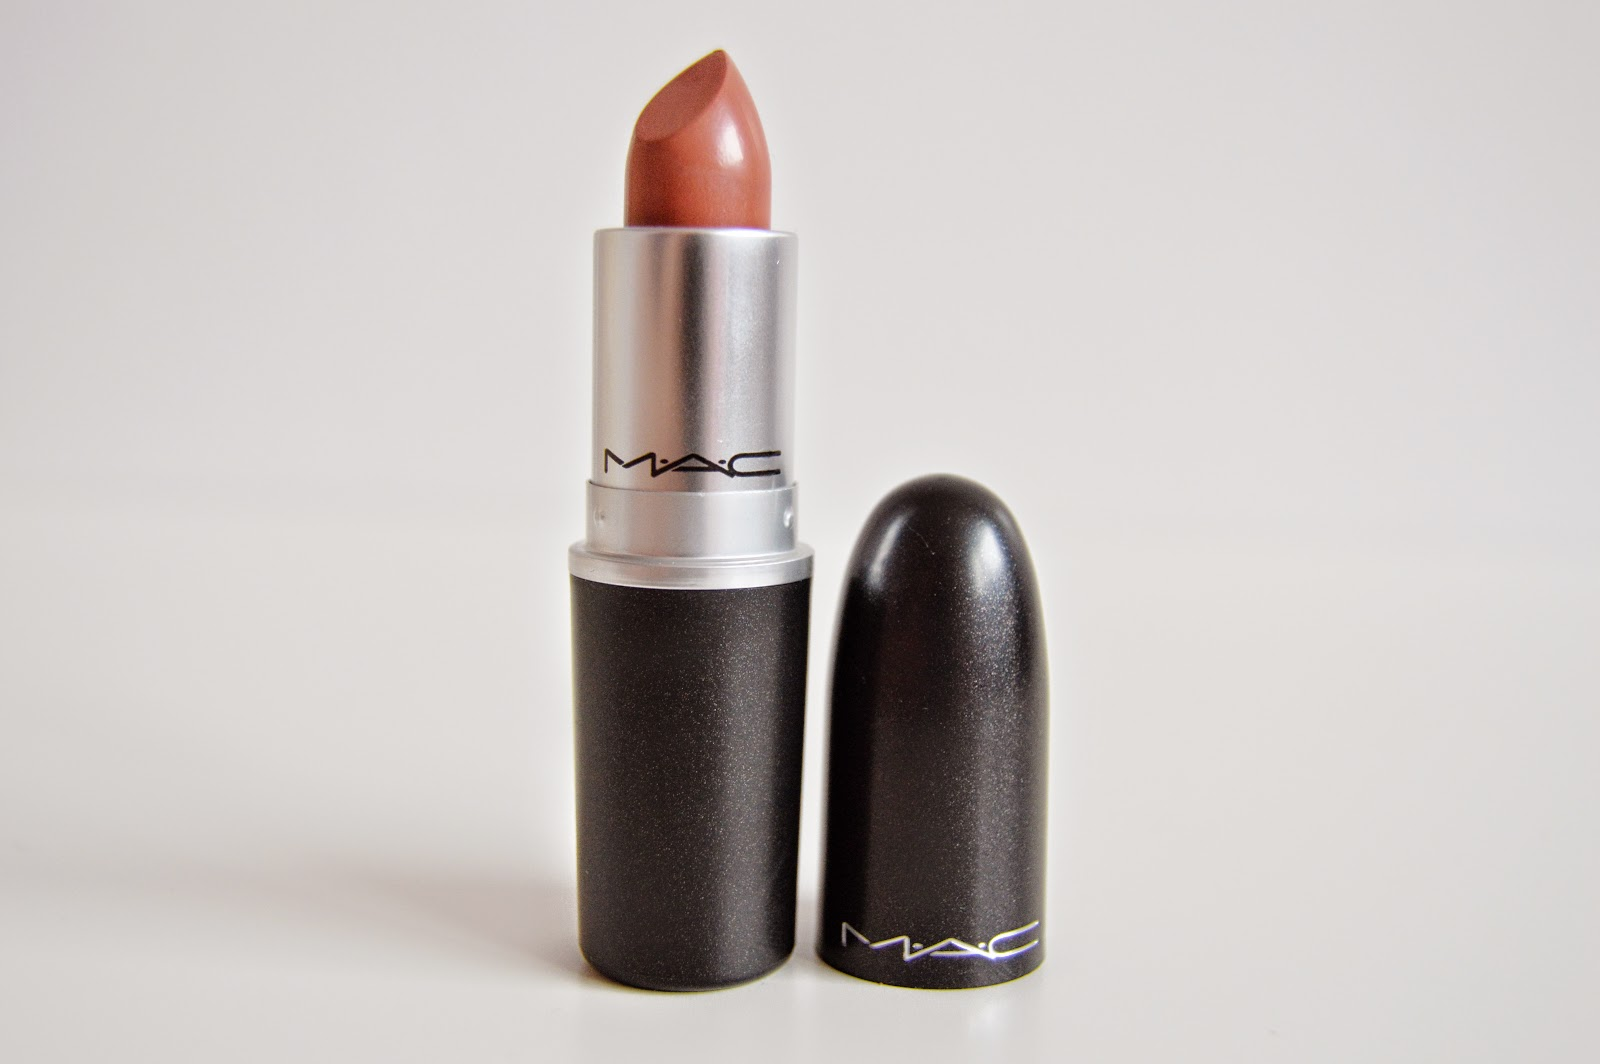 mac velvet teddy matte lipstick review swatched swatches all that shimmers